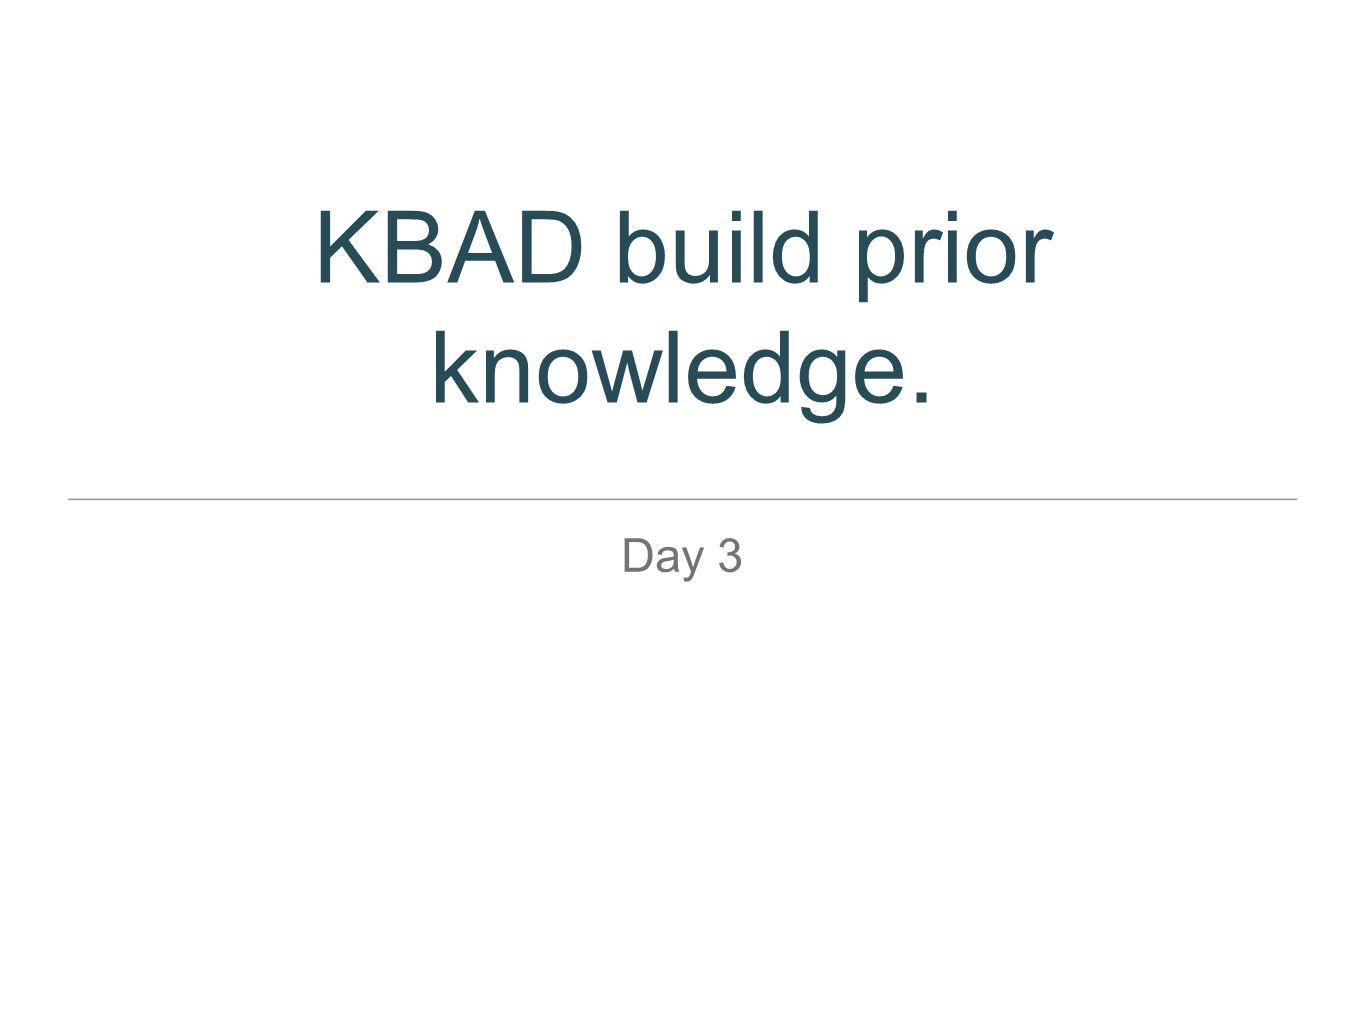 KBAD build prior knowledge.